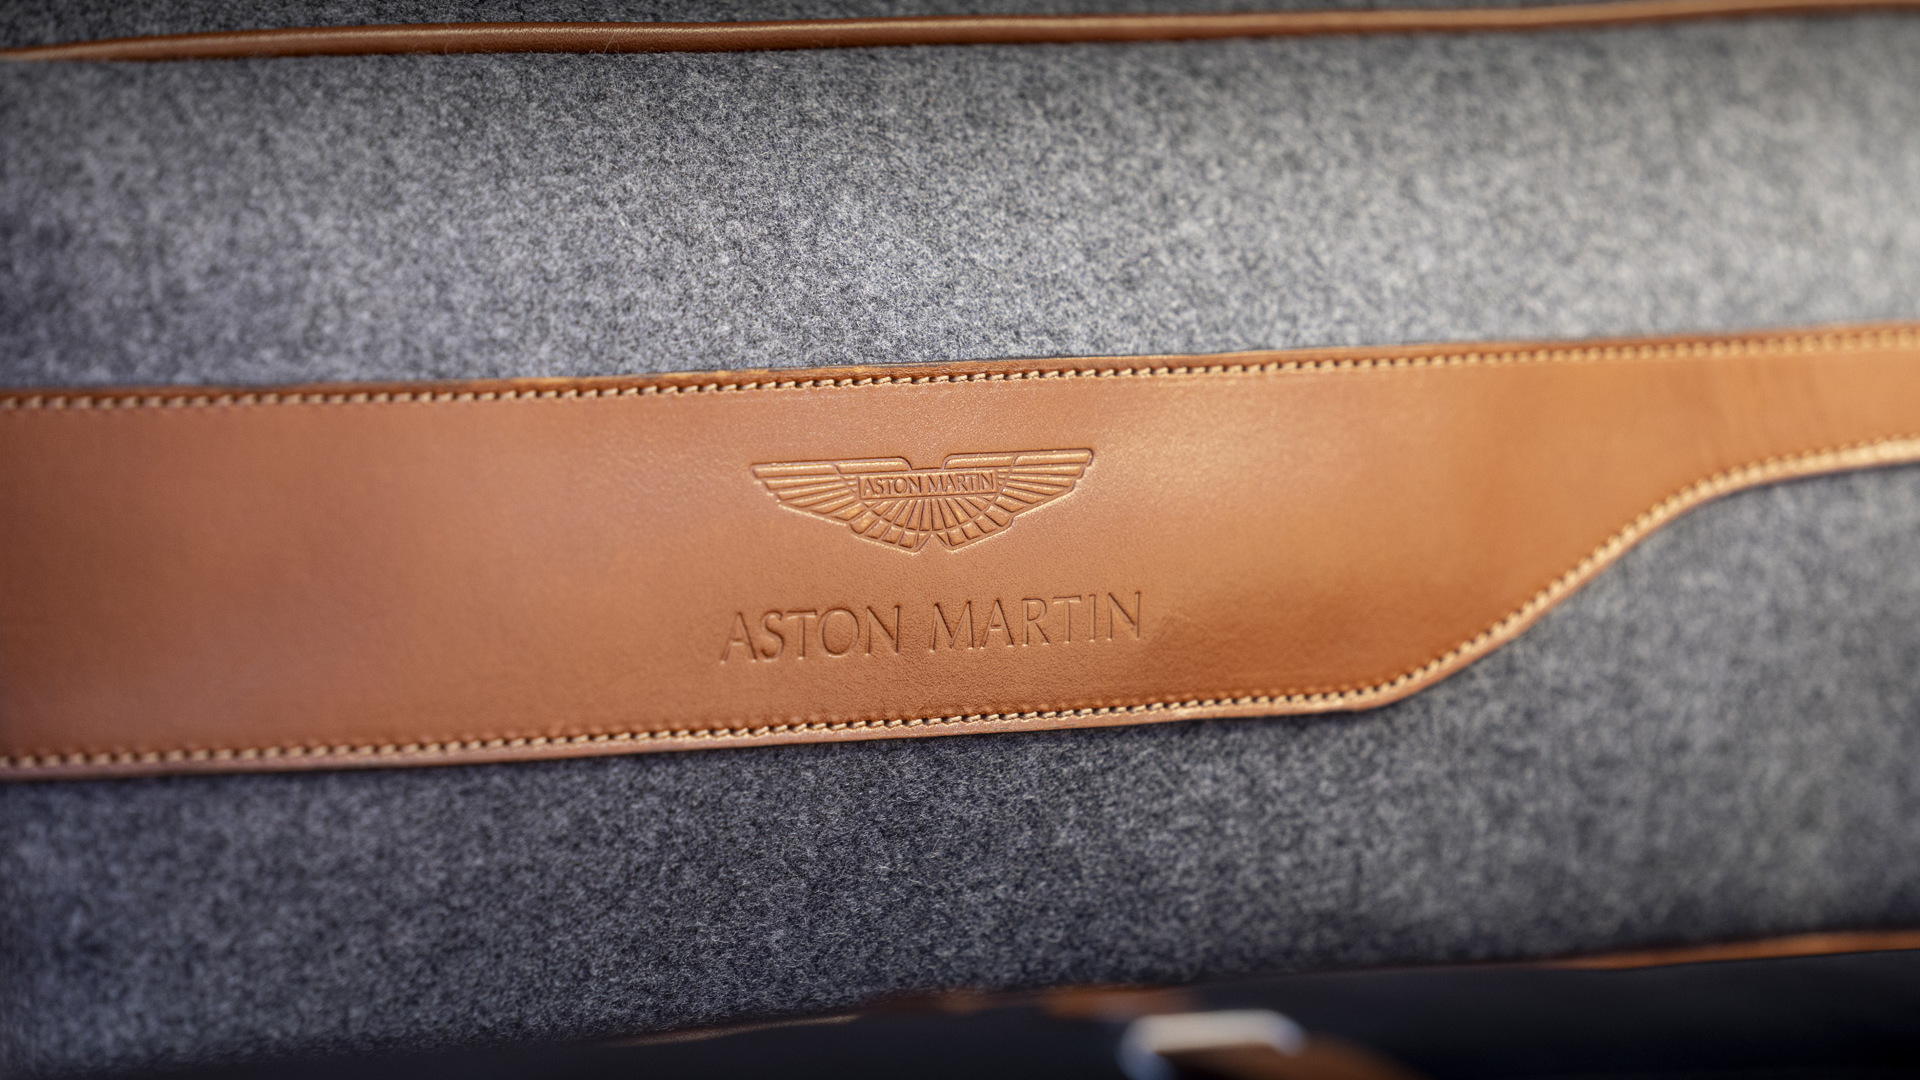 Aston Martin DBX lifestyle accessories